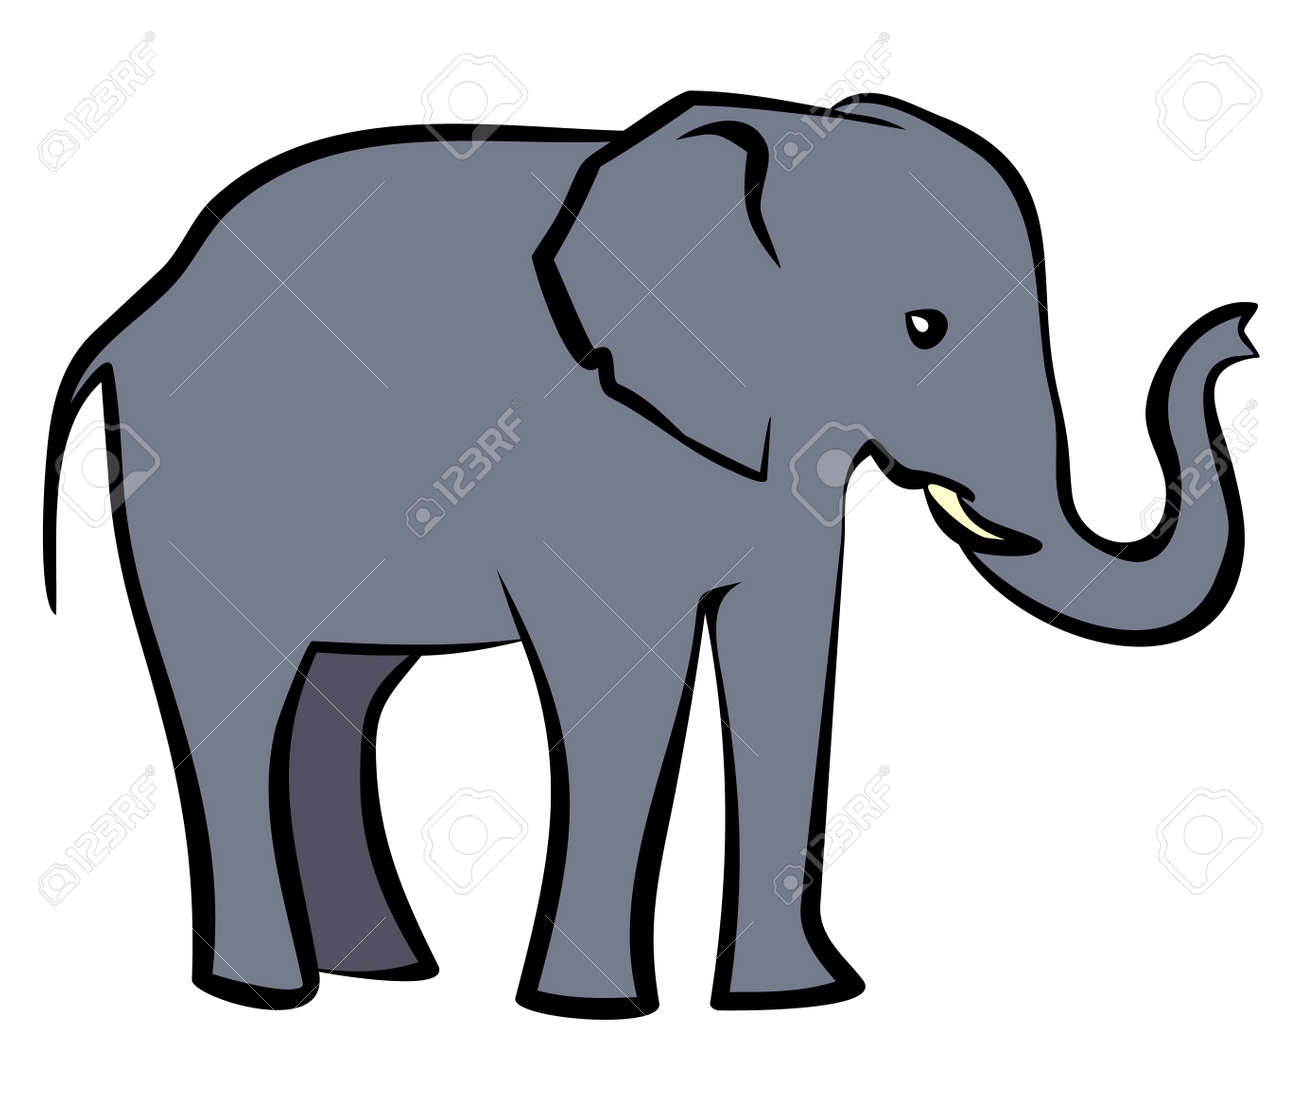 baby elephant vector illustration royalty free cliparts vectors rh 123rf com elephant vector free download elephant vector images